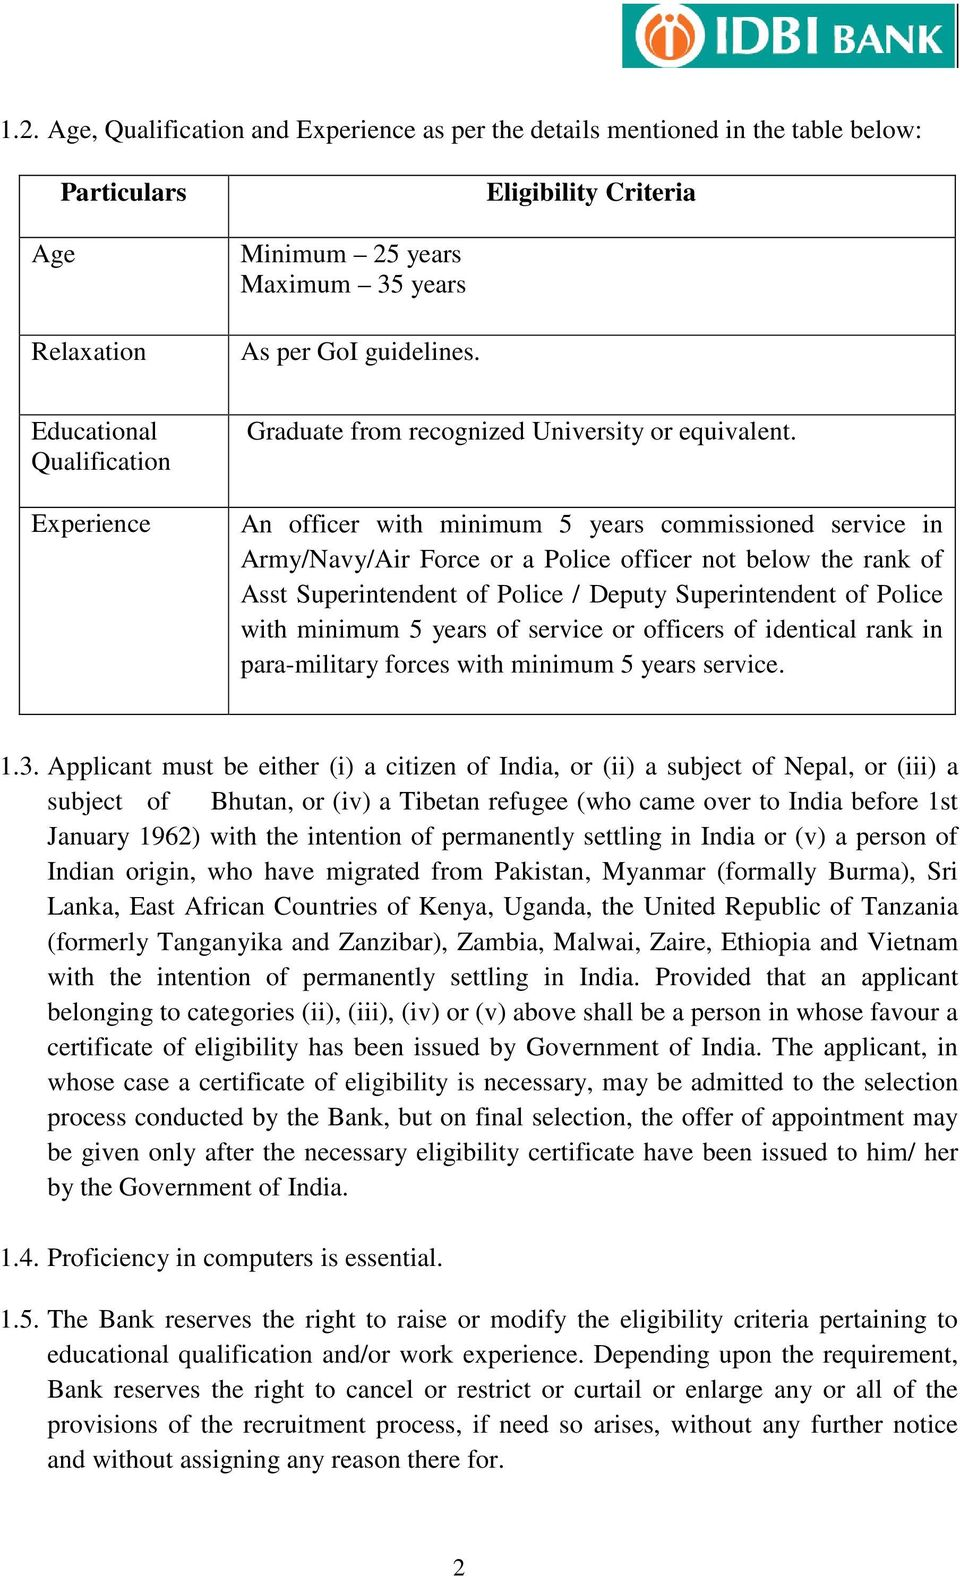 An officer with minimum 5 years commissioned service in Army/Navy/Air Force or a Police officer not below the rank of Asst Superintendent of Police / Deputy Superintendent of Police with minimum 5